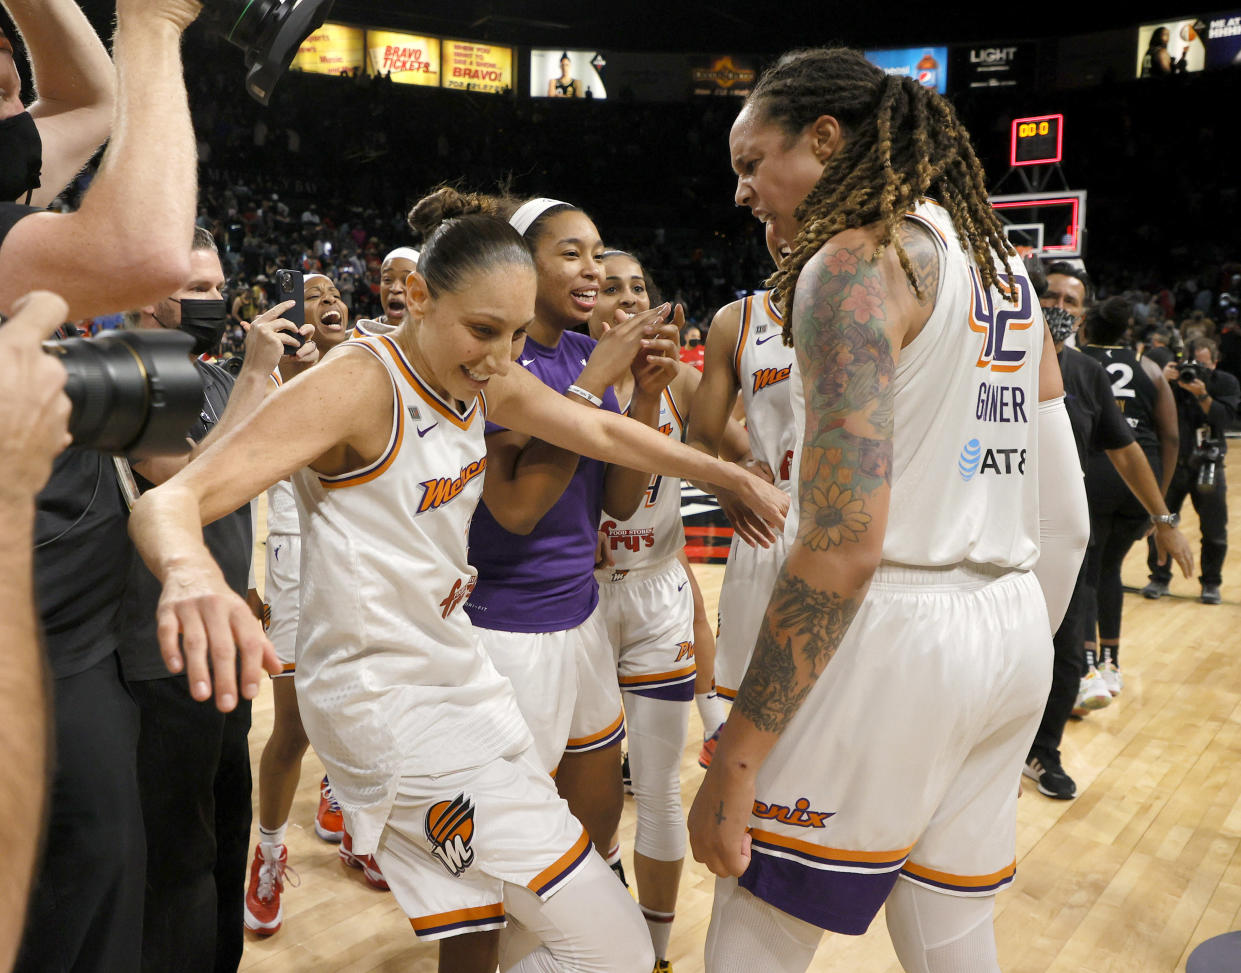 Diana Taurasi falls backward while celebrating with Brittney Griner, who is yelling in excitement, after the Mercury won Game 5 of the WNBA semifinals series against the Aces.